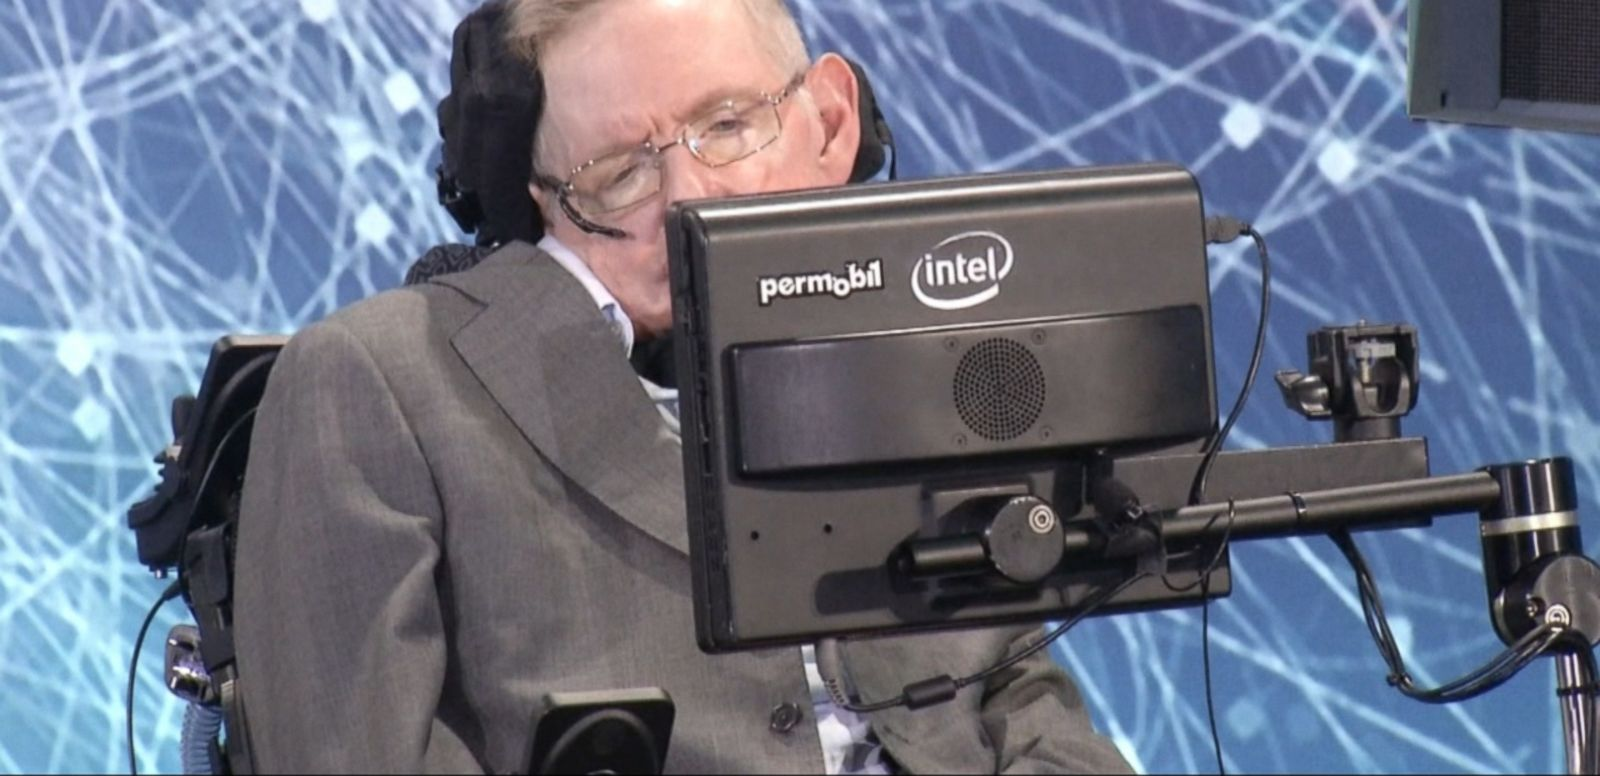 VIDEO: World-renowned British physicist Stephen Hawking may understand the many mysteries of the universe, but even he's having a hard time grasping Donald Trump's meteoric rise in popularity.